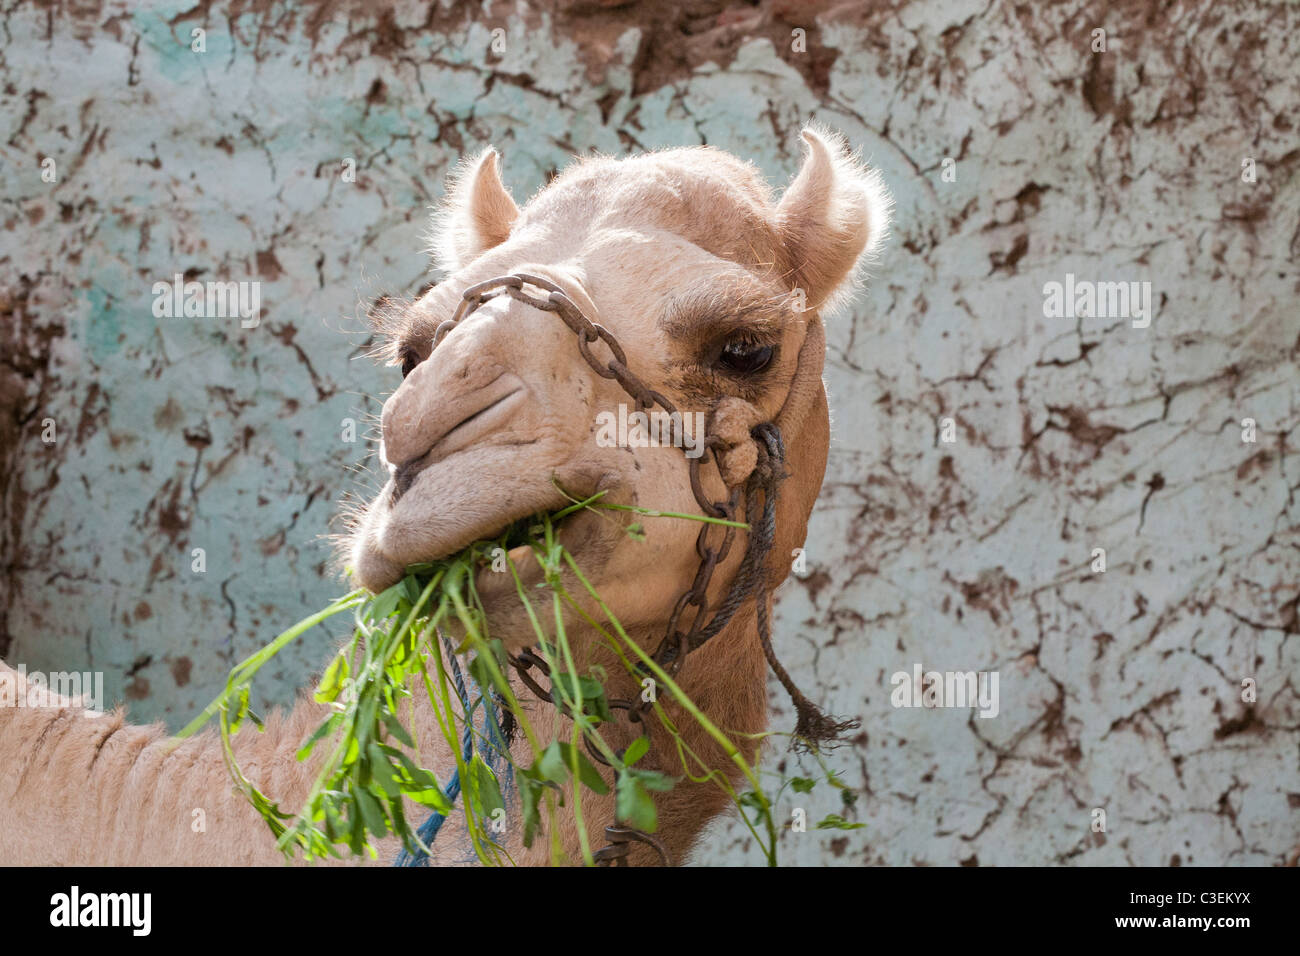 A camel called Susie that I met in Luxor, Egypt - Stock Image